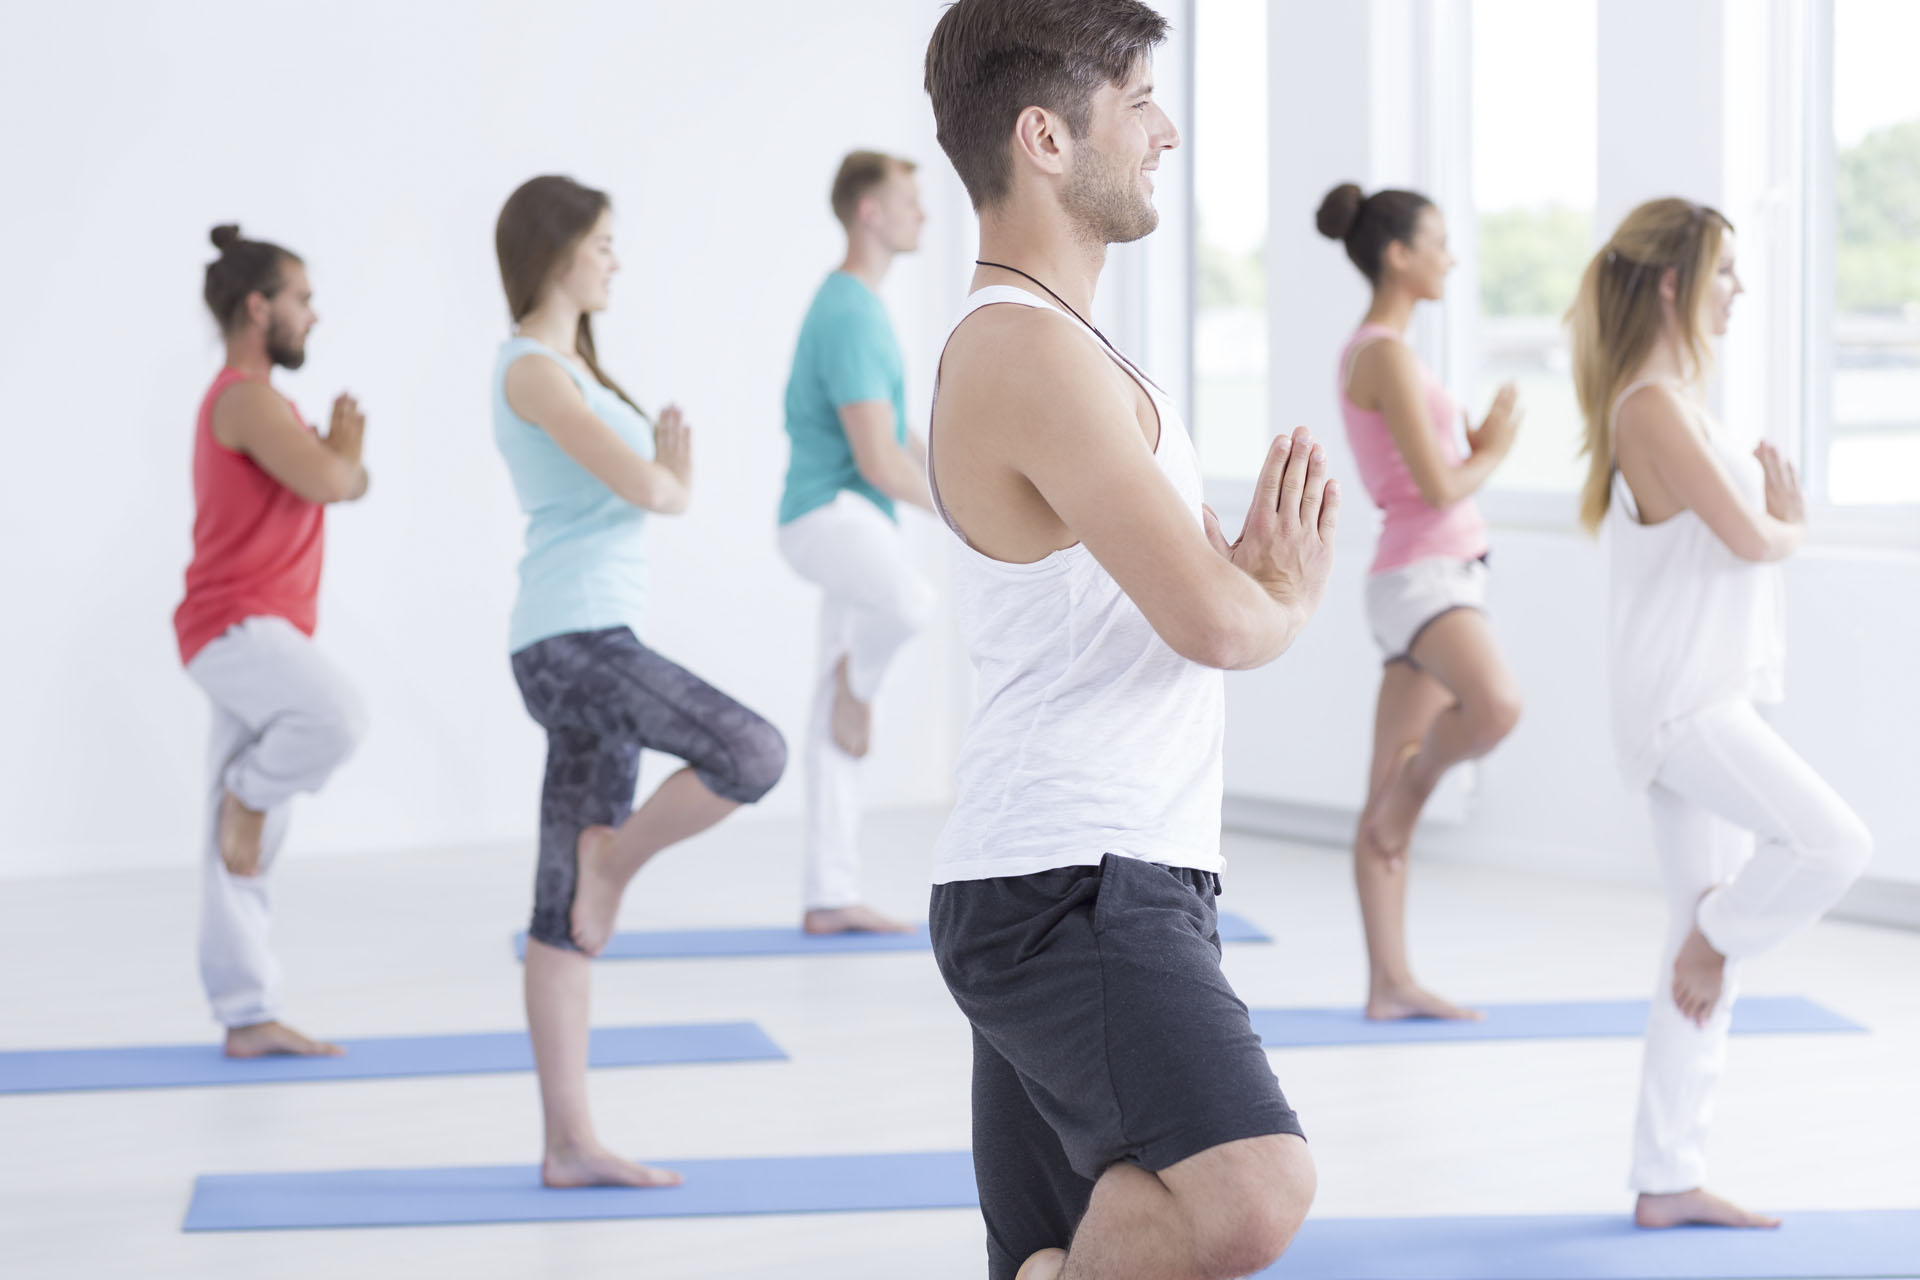 Shot of a young man doing yoga in an exercise studio